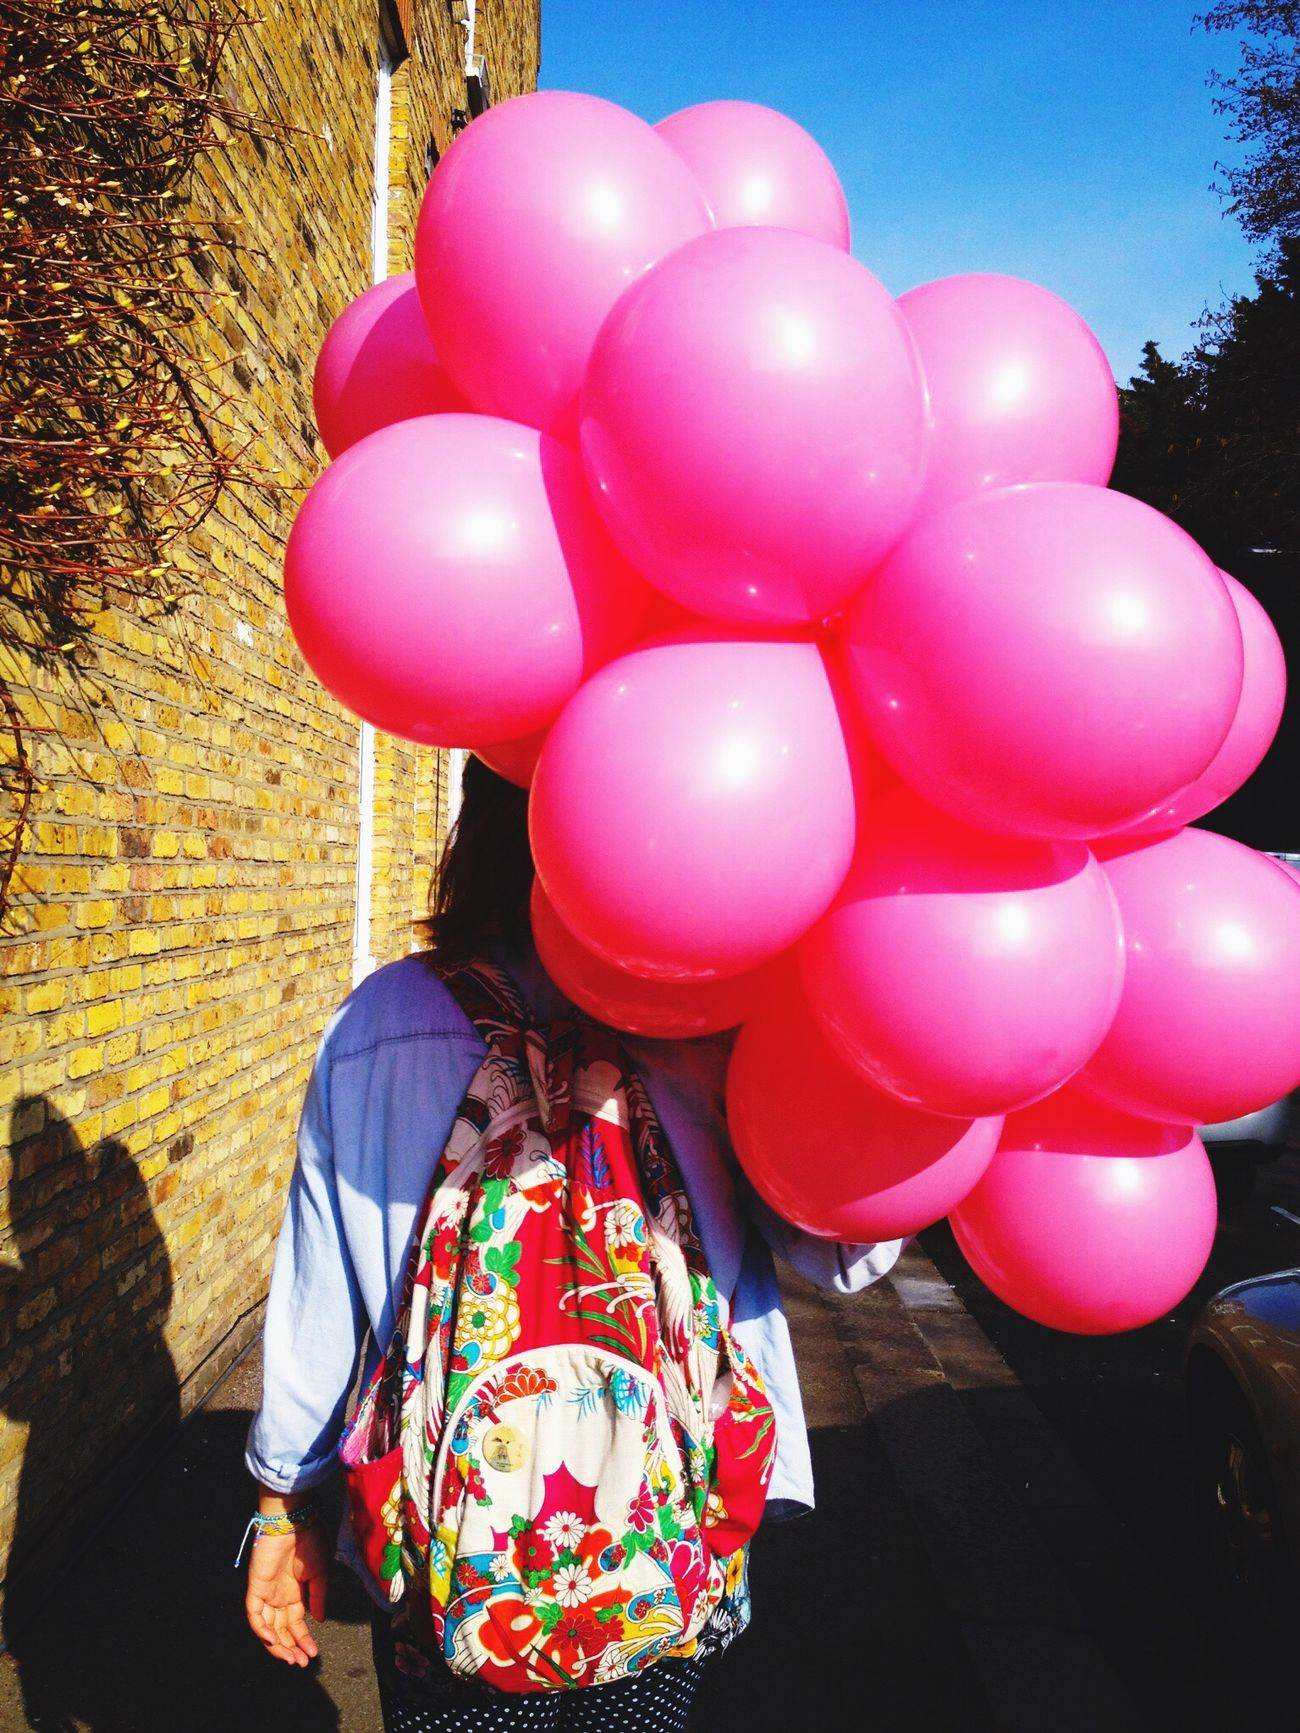 Millennial Pink Pink Pink Color Pink Ballon Balloon Balloons Walk Walking Around Walking Spring Springtime Spring Has Arrived Sunny Sunny Day Sunnyday Sunny Afternoon Colors Colorful Colour Of Life Colourful Colours Color Color Photography Colour